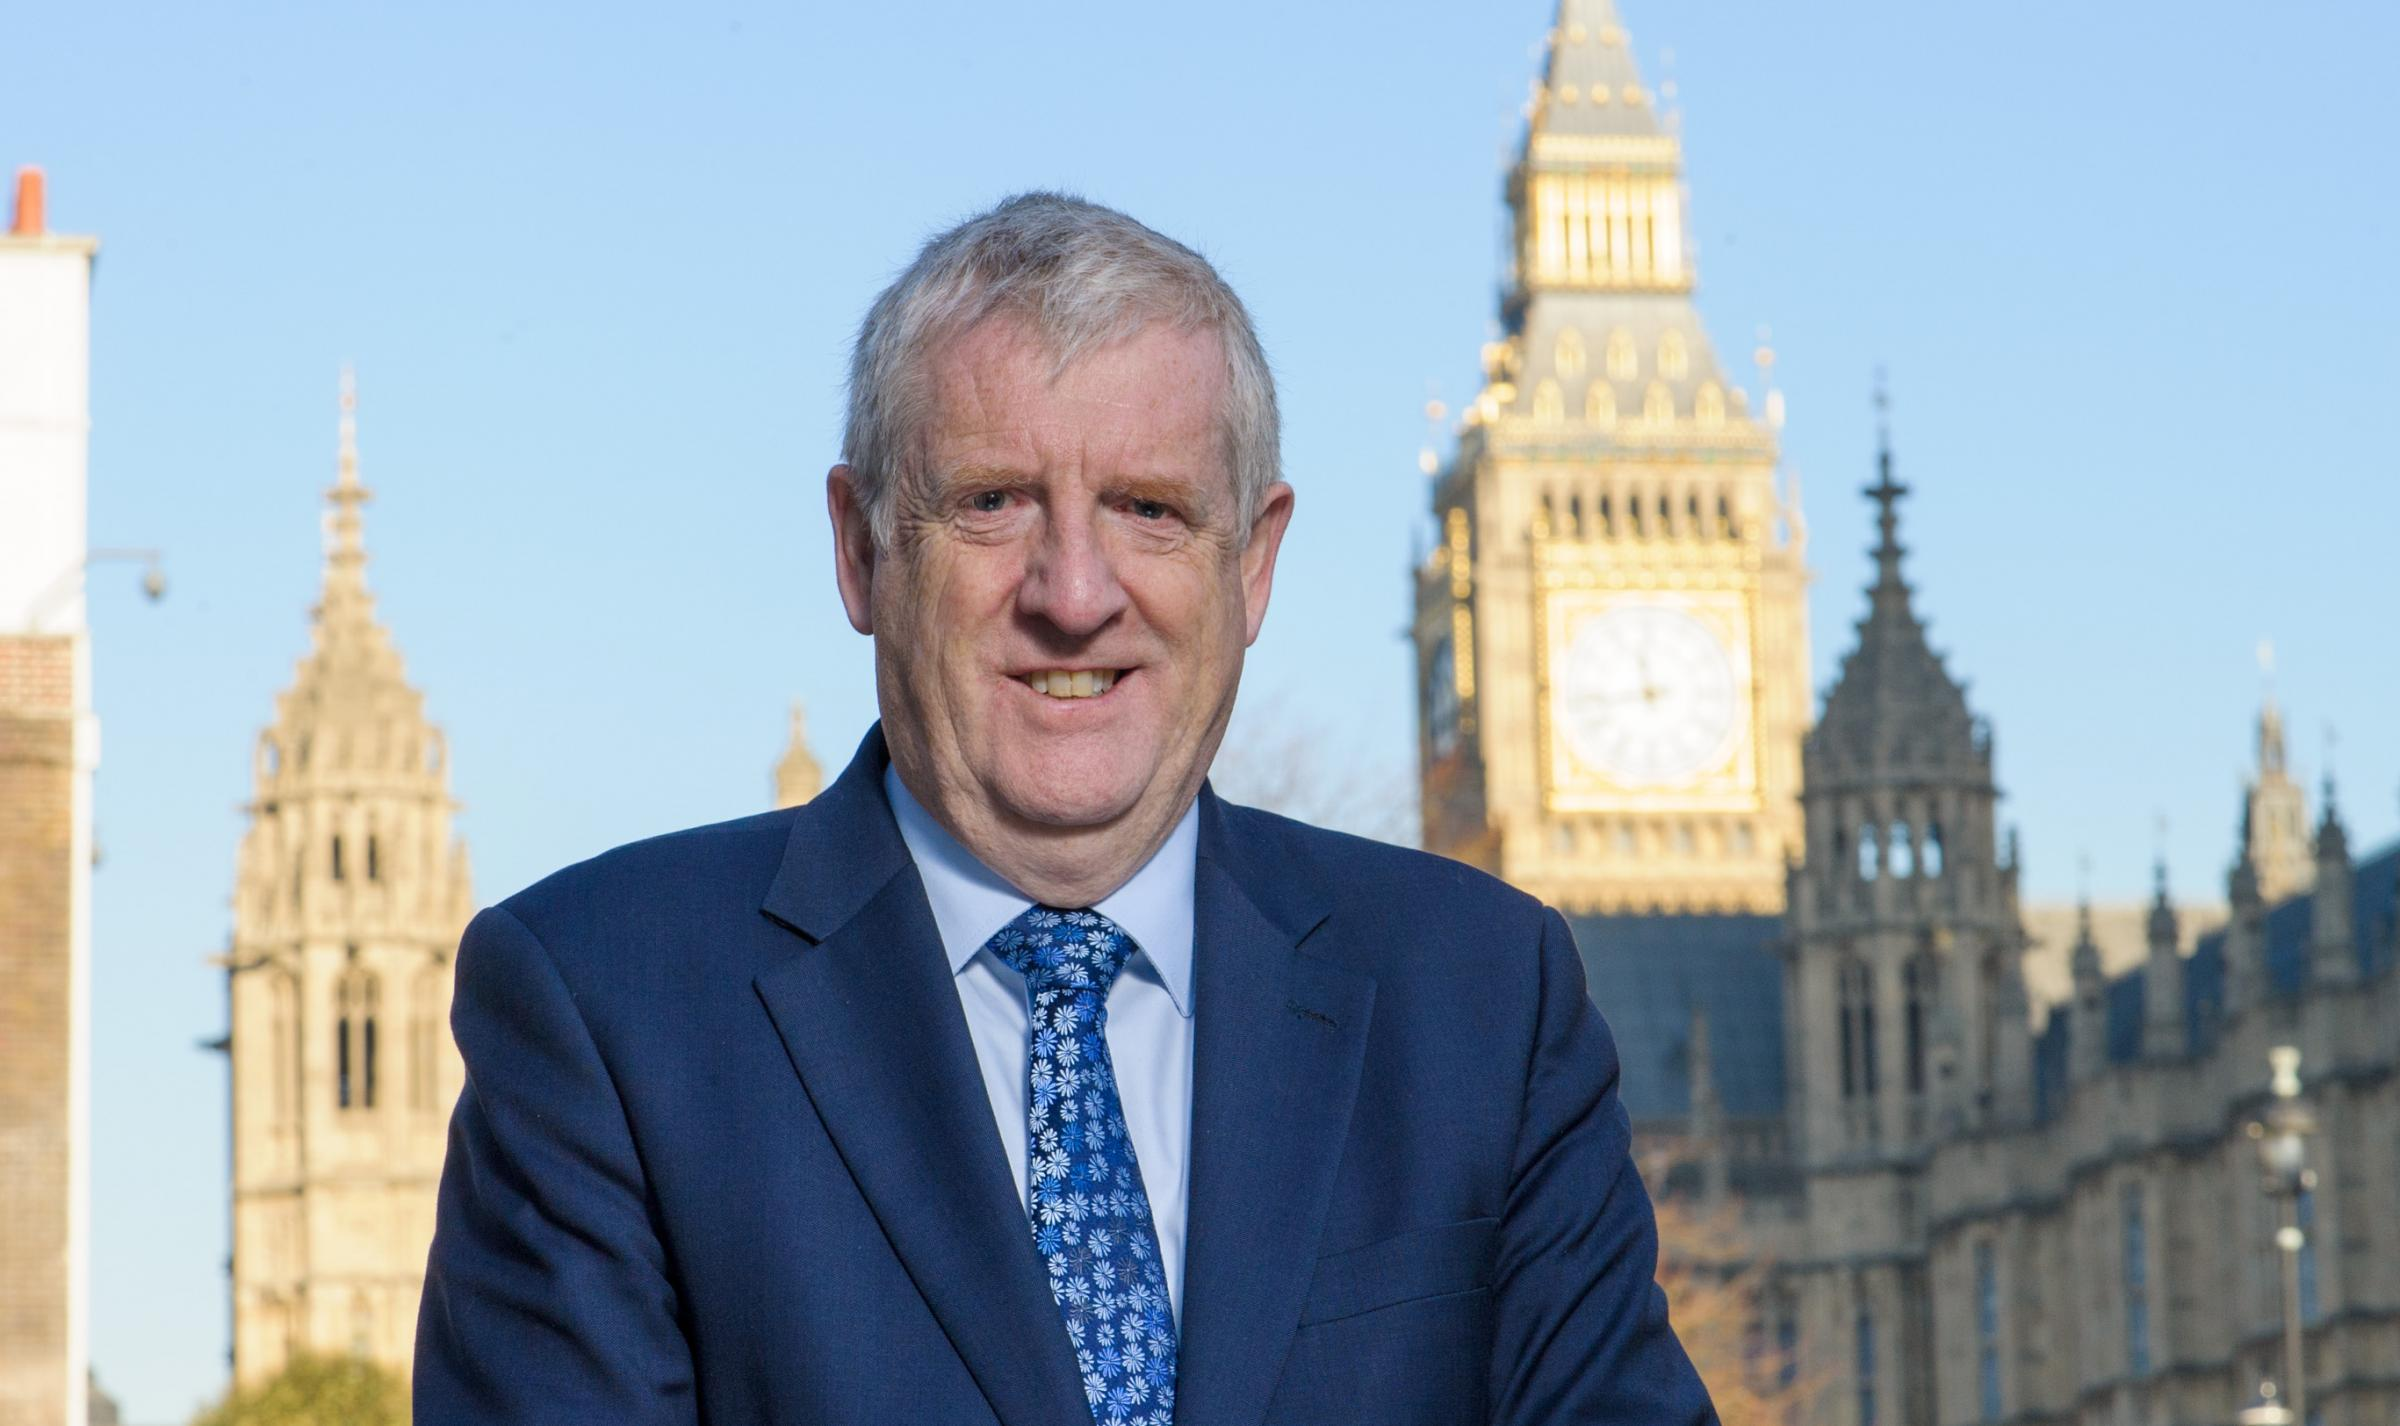 Dunfermline and West Fife MP Douglas Chapman was speaking after he co-chaired an evidence session of the Public Accounts Committee